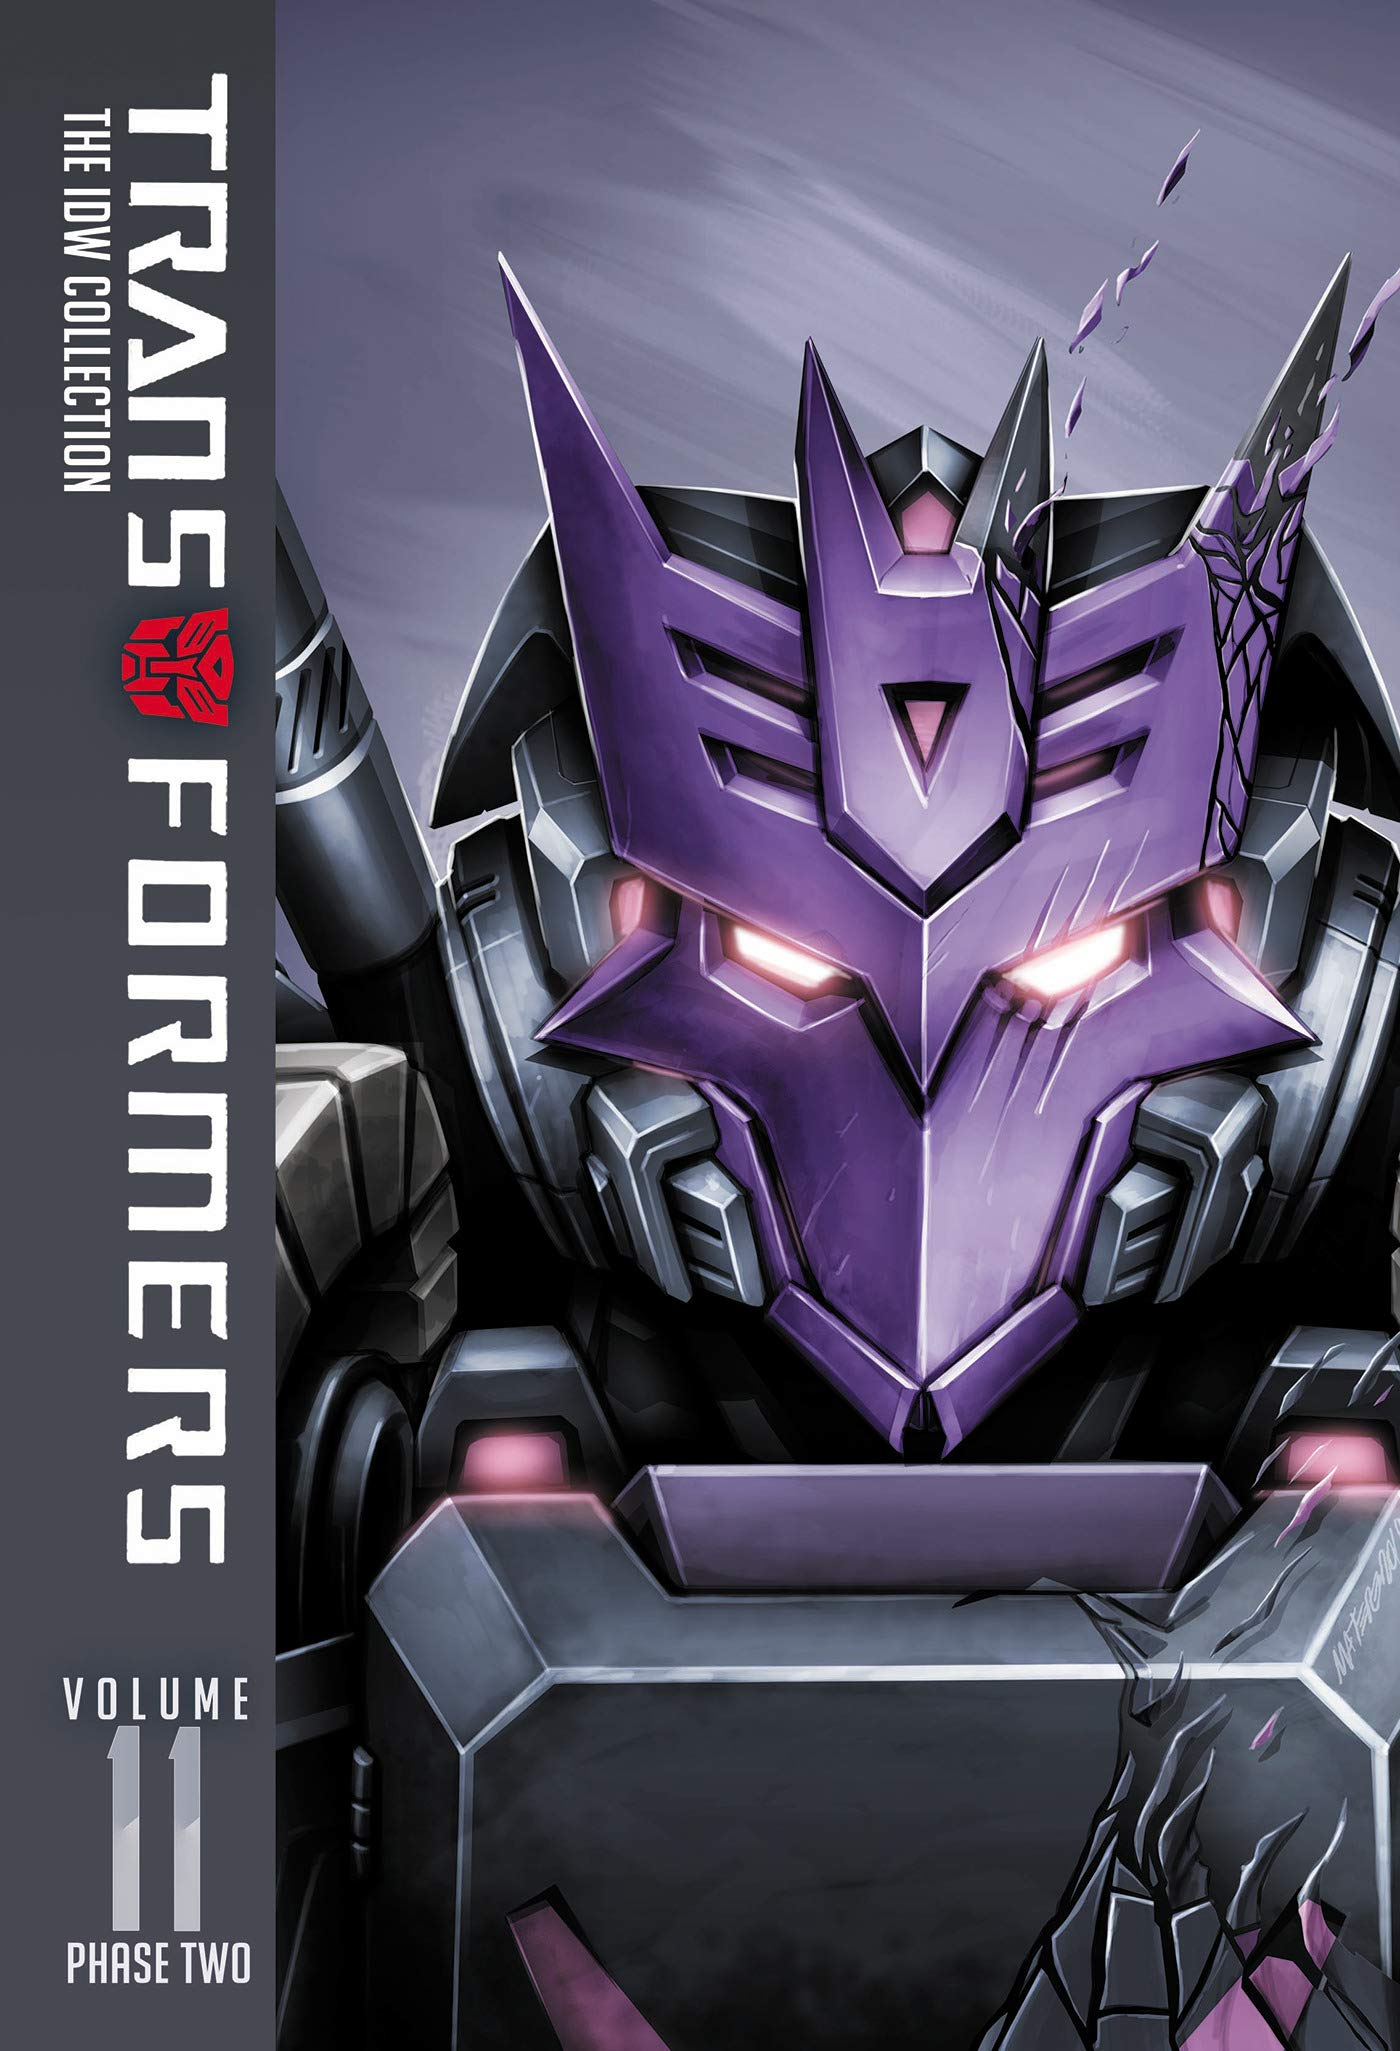 Transformers: IDW Collection Phase Two Volume 11 by IDW Publishing